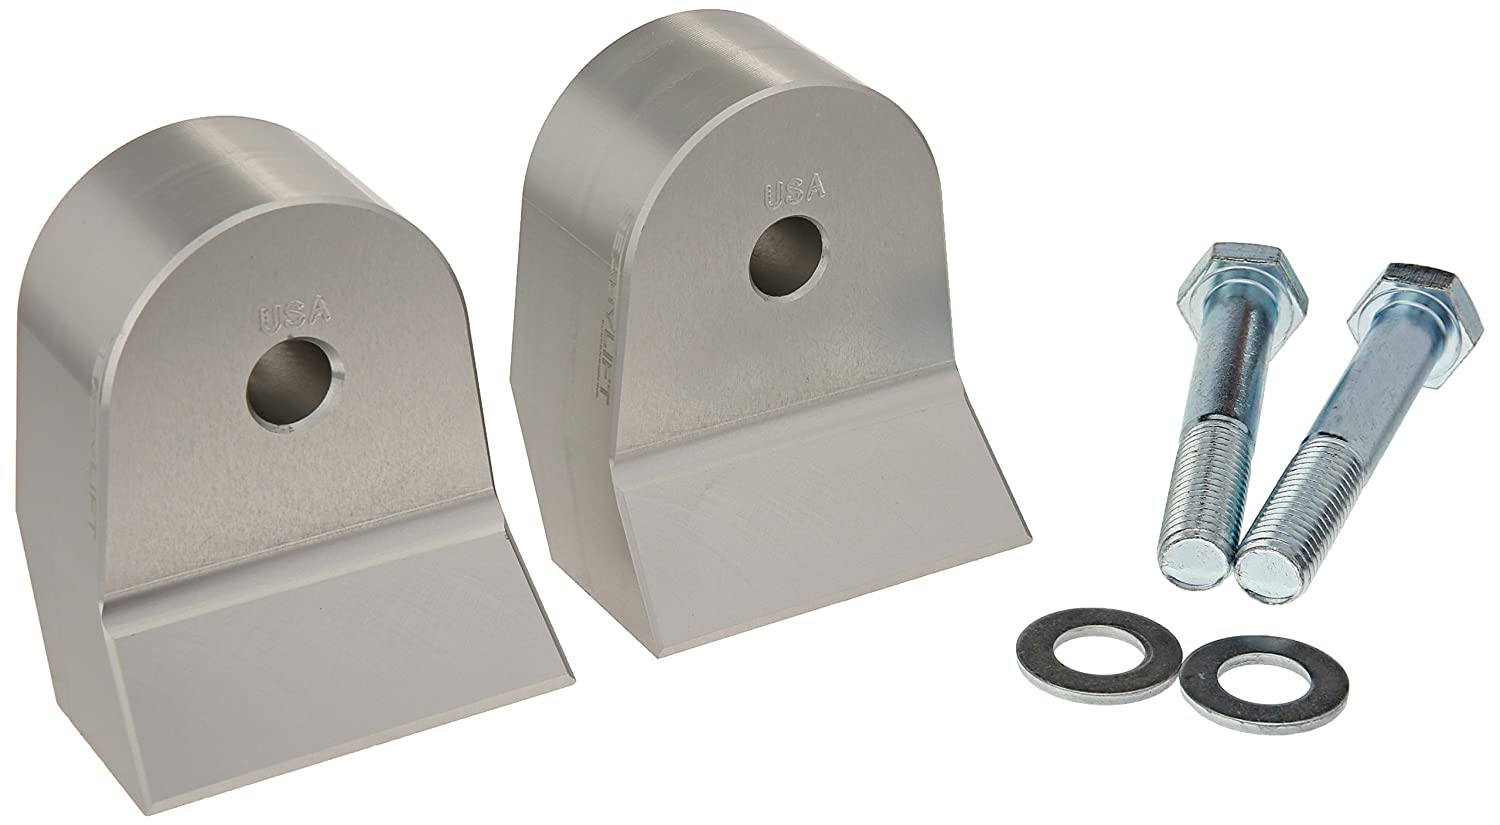 ReadyLift T6-2111S T6 Billet Silver 1.5 Leveling Kit for Ford Super Duty F250 4WD 2005-Up